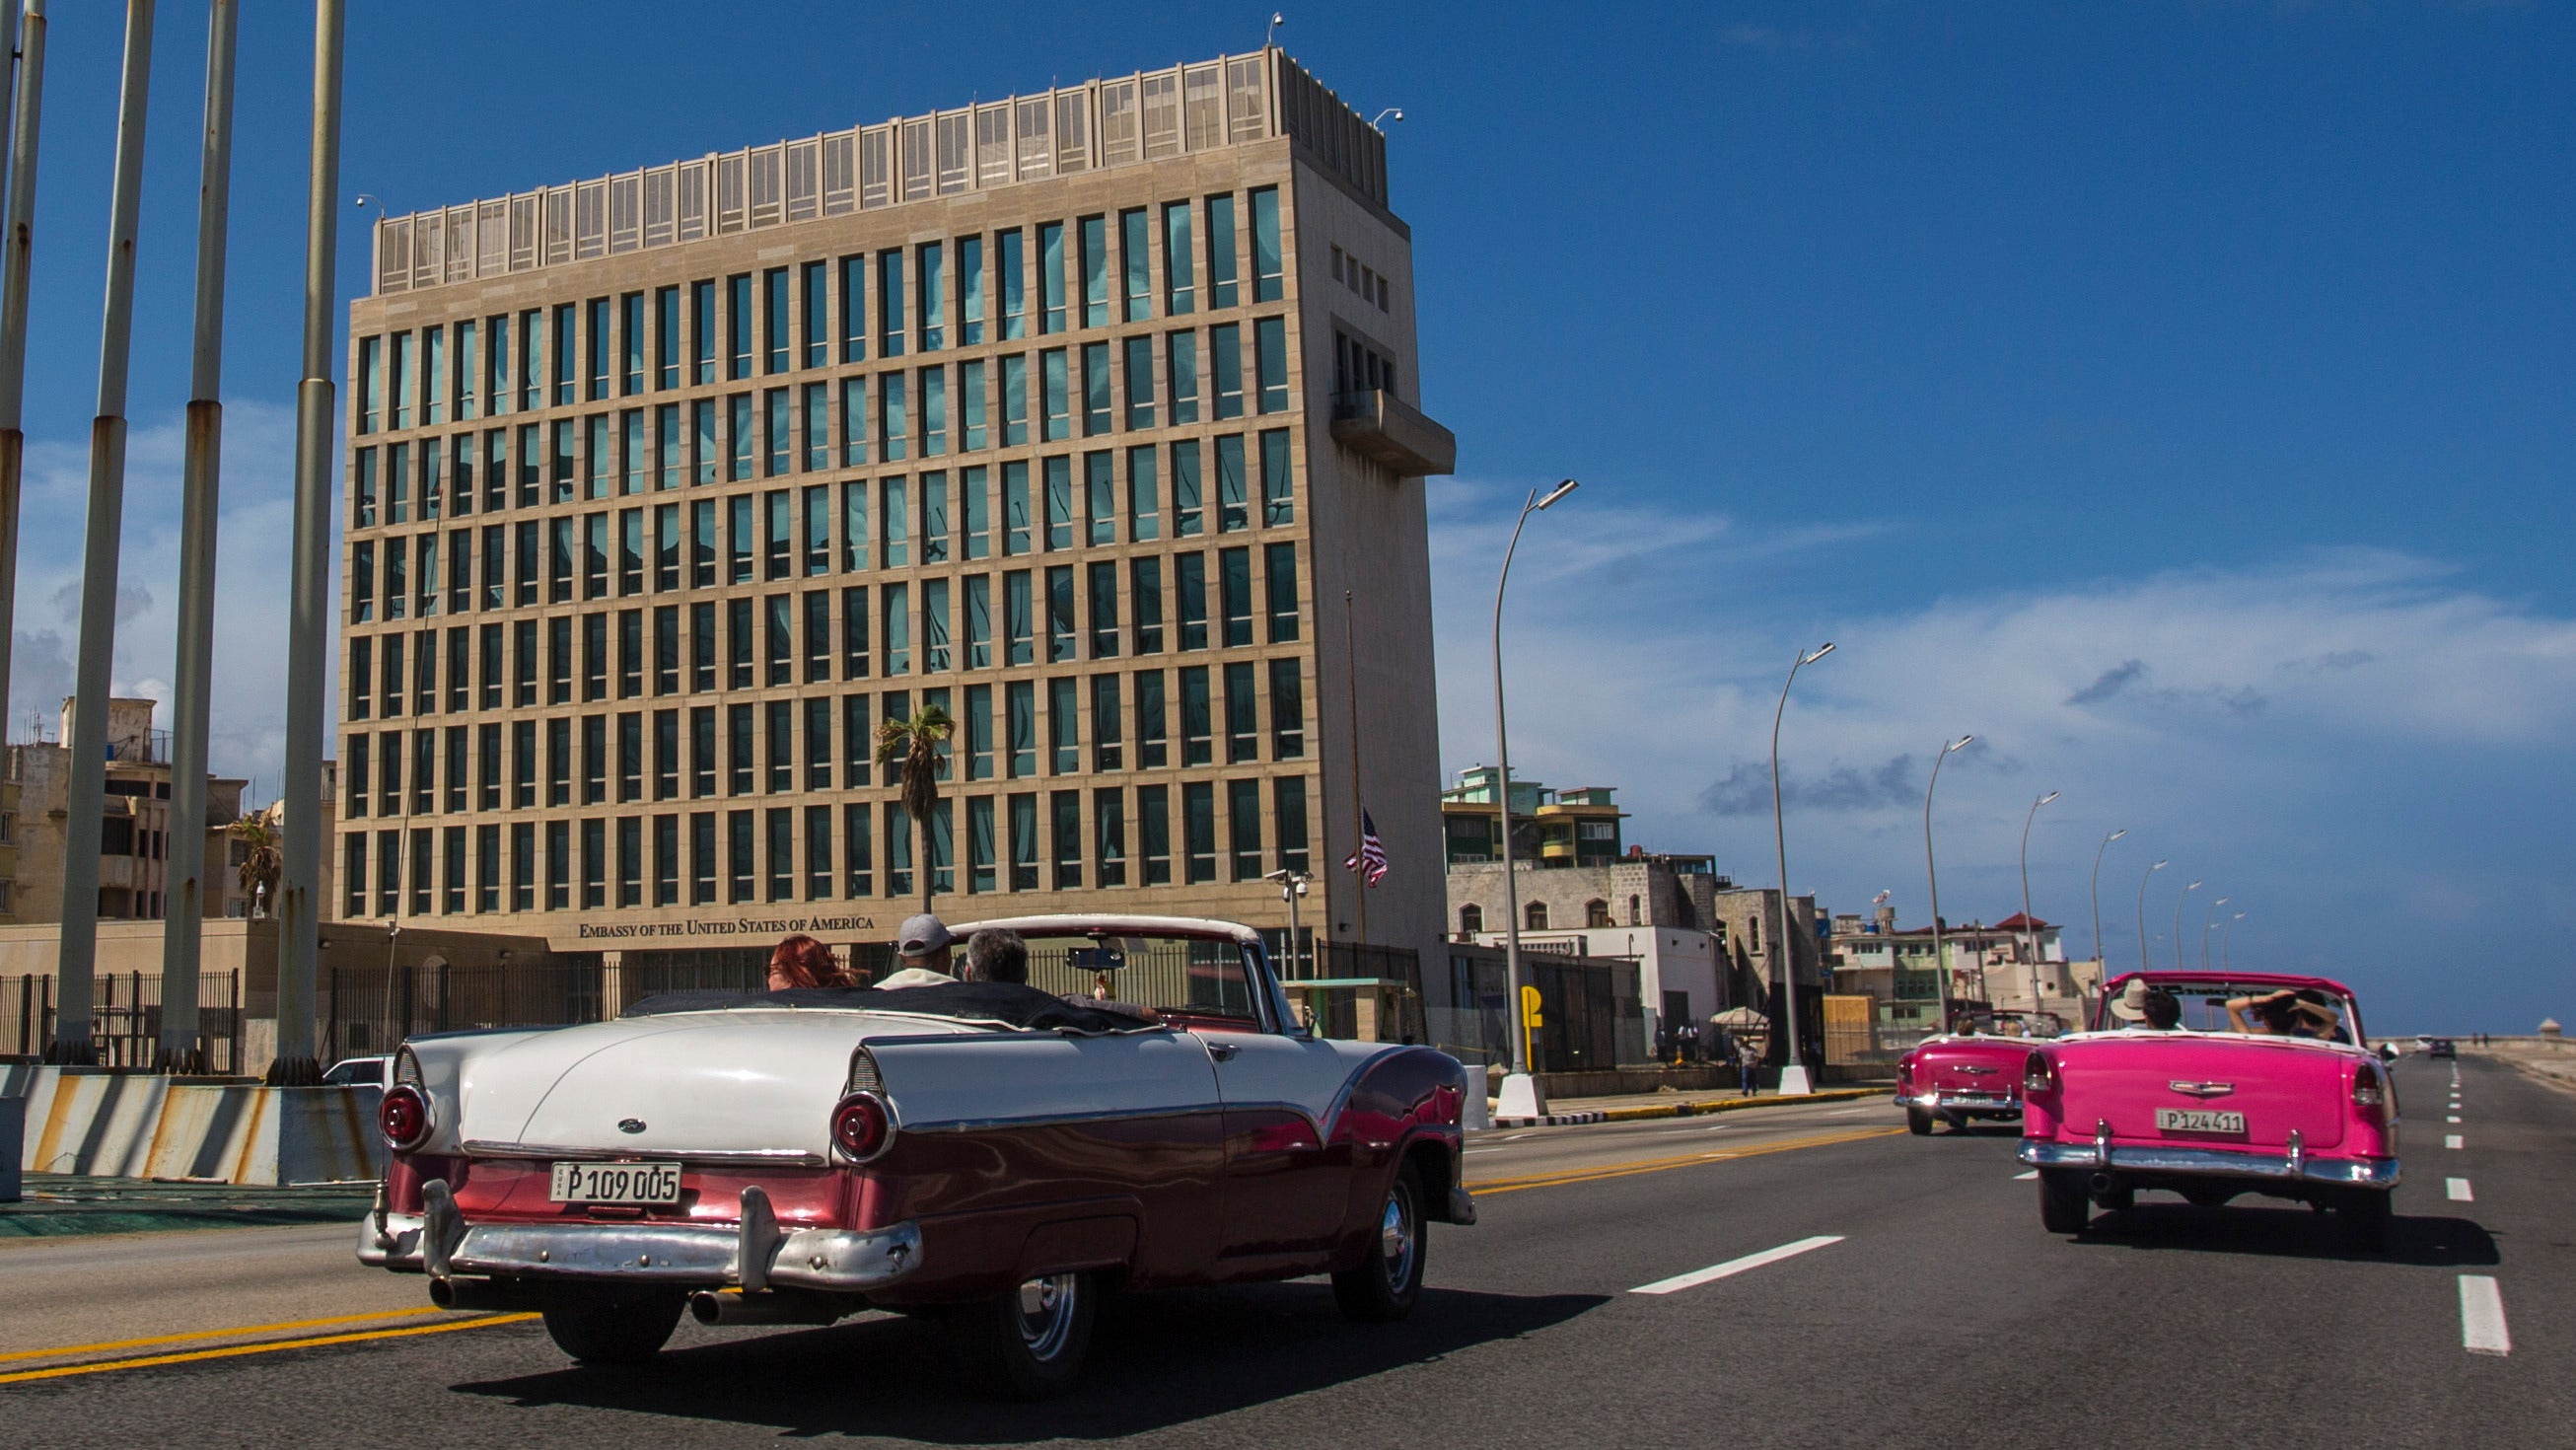 Study: Malfunctioning Surveillance Gear, Not Sonic Weapons, Could Explain Cuba Embassy 'Attack'